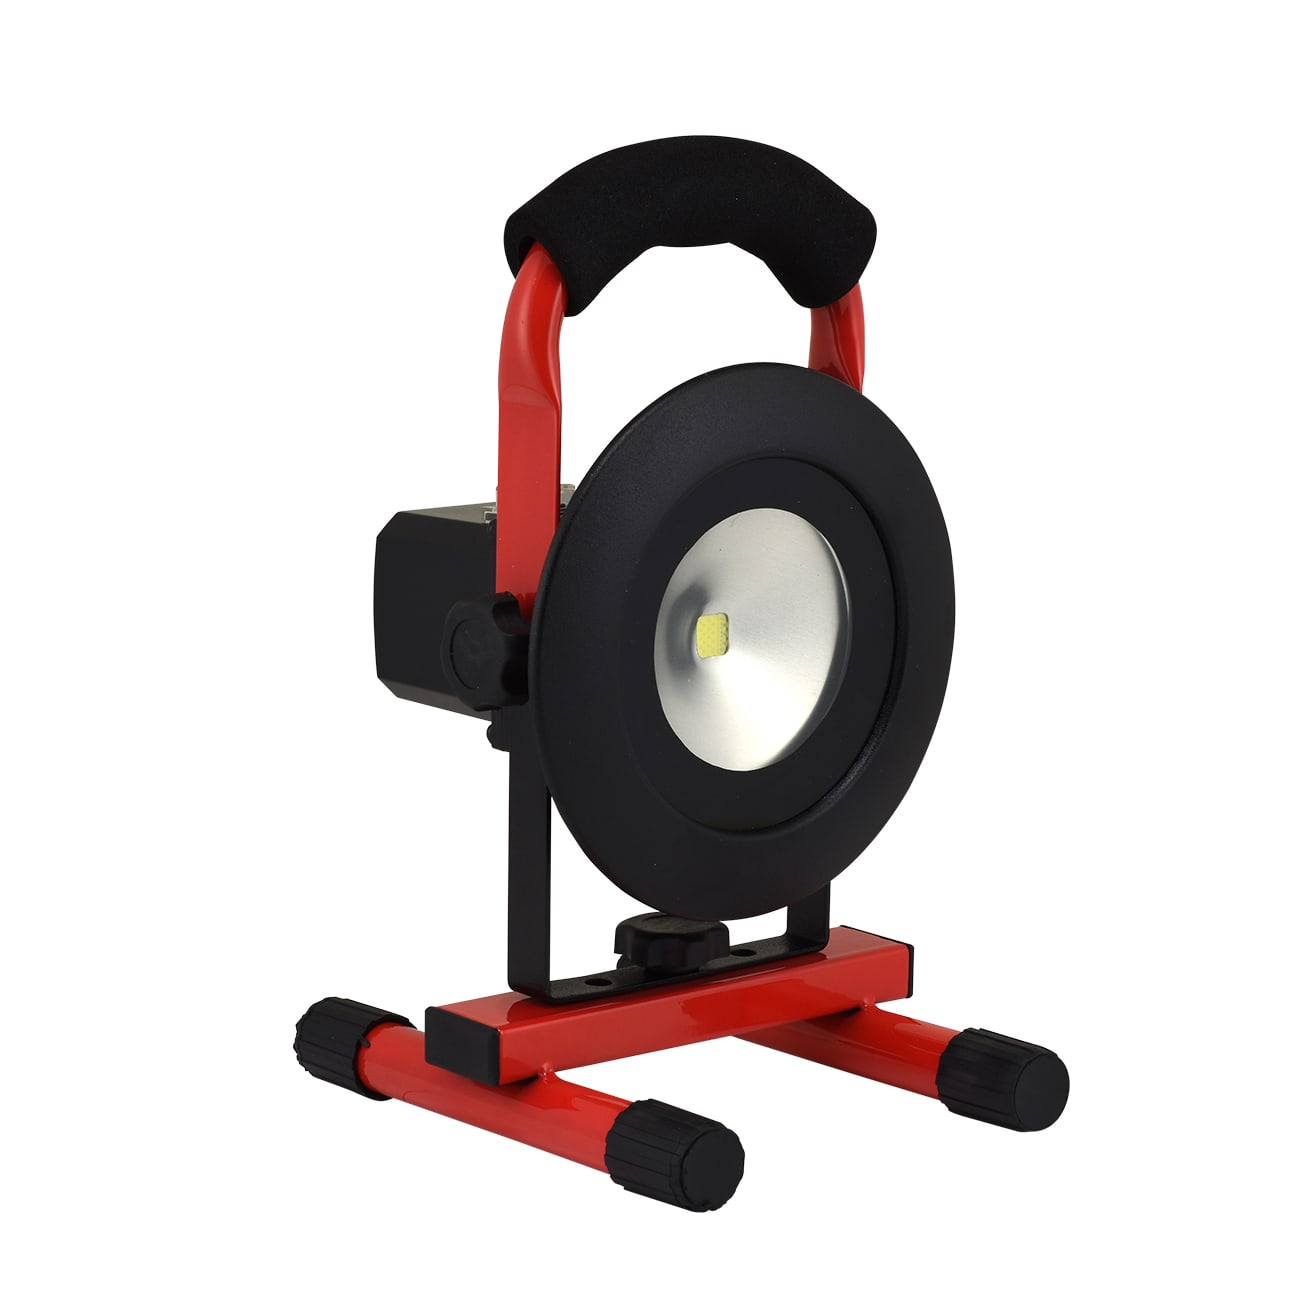 Led Flood Light Rechargeable 20w: Rechargeable LED Flood Light